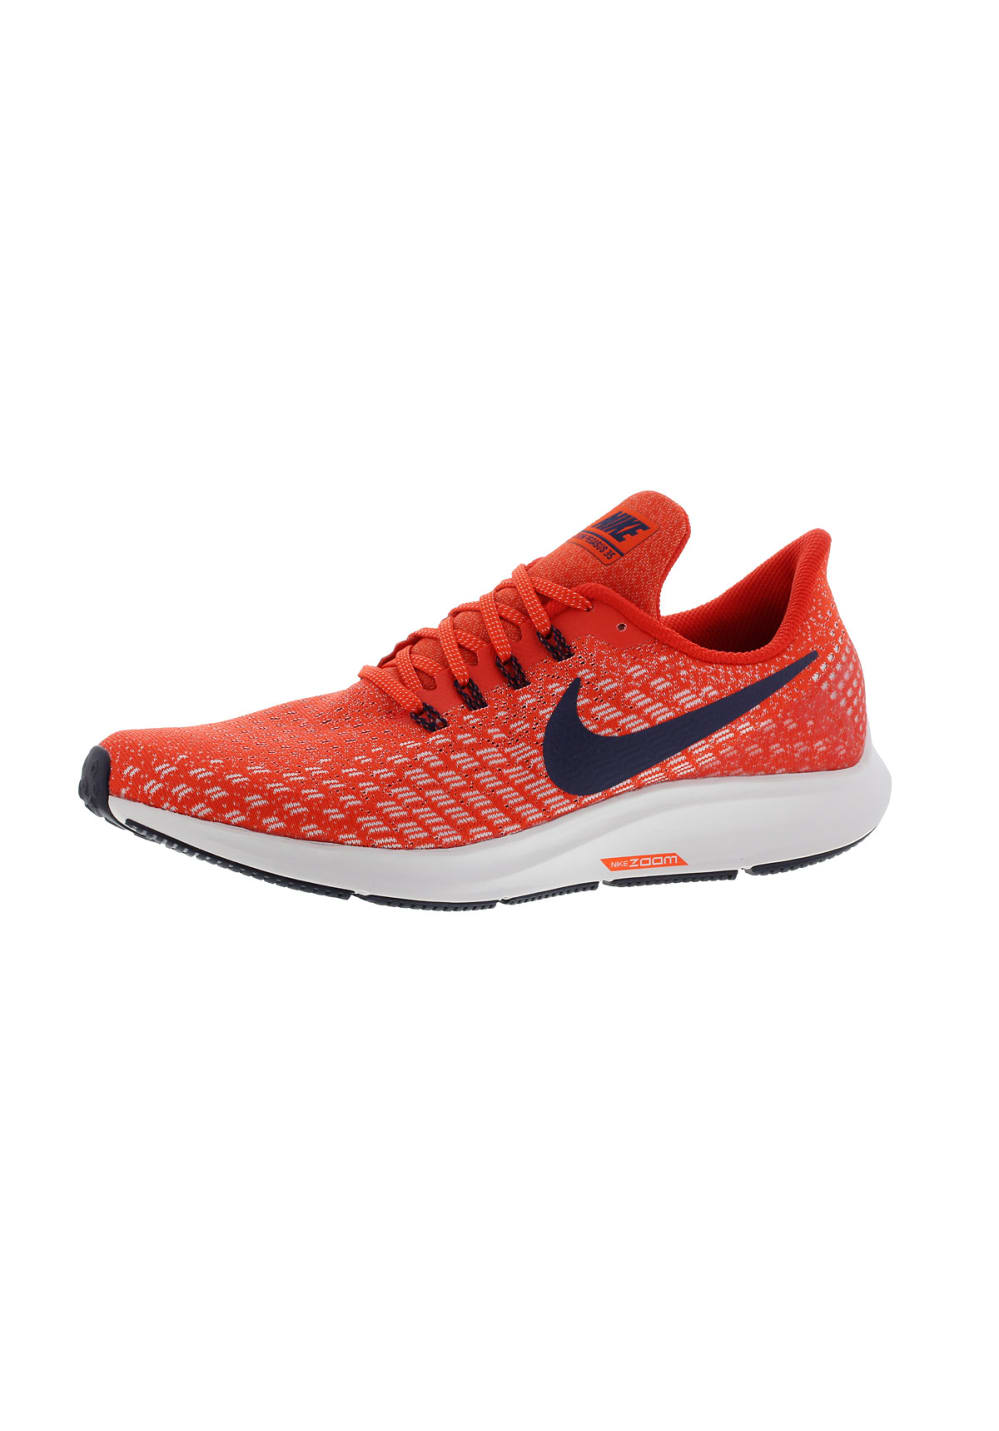 ebe46eb638603 Next. -50%. This product is currently out of stock. Nike. Air Zoom Pegasus  35 ...